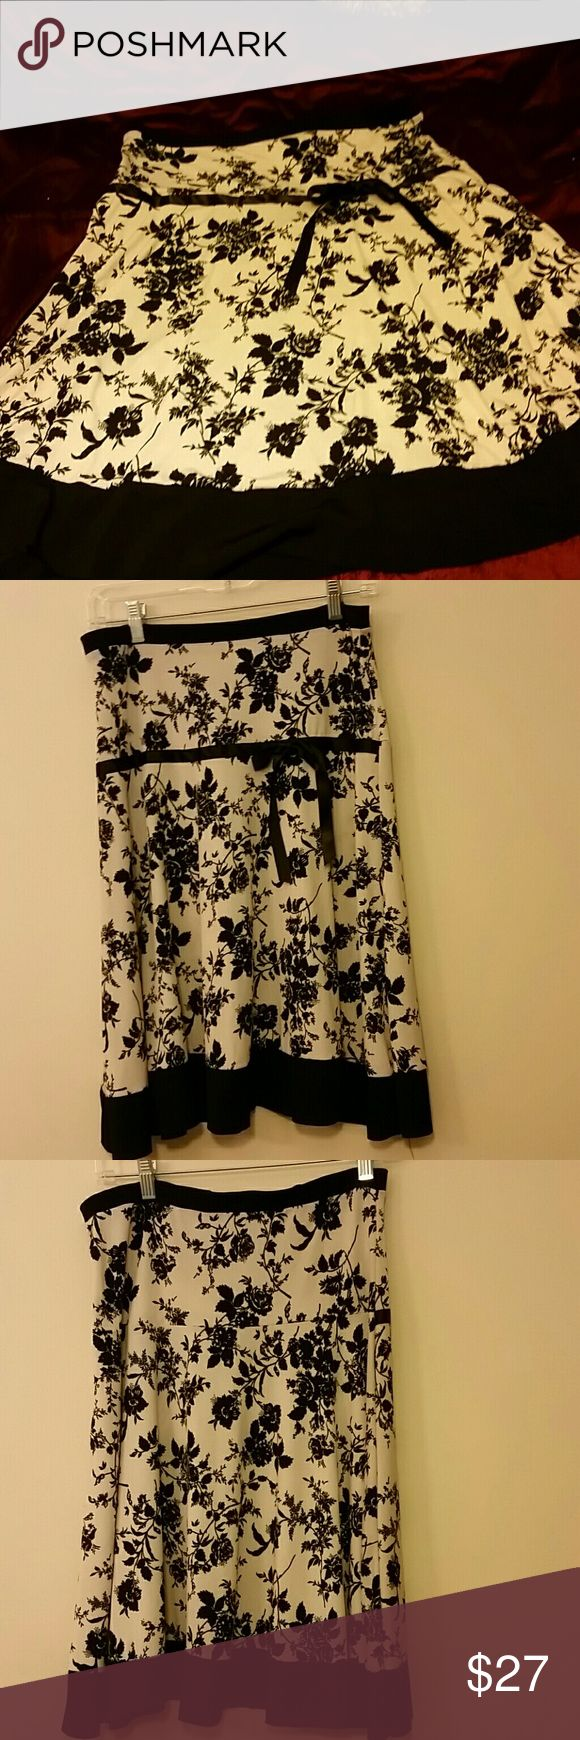 Body Central flower skirt size medium NWOT Skirt has satin ribbon highlight and black flower detail.  Skirt measures 24 inches from hem to hem Body Central Skirts A-Line or Full